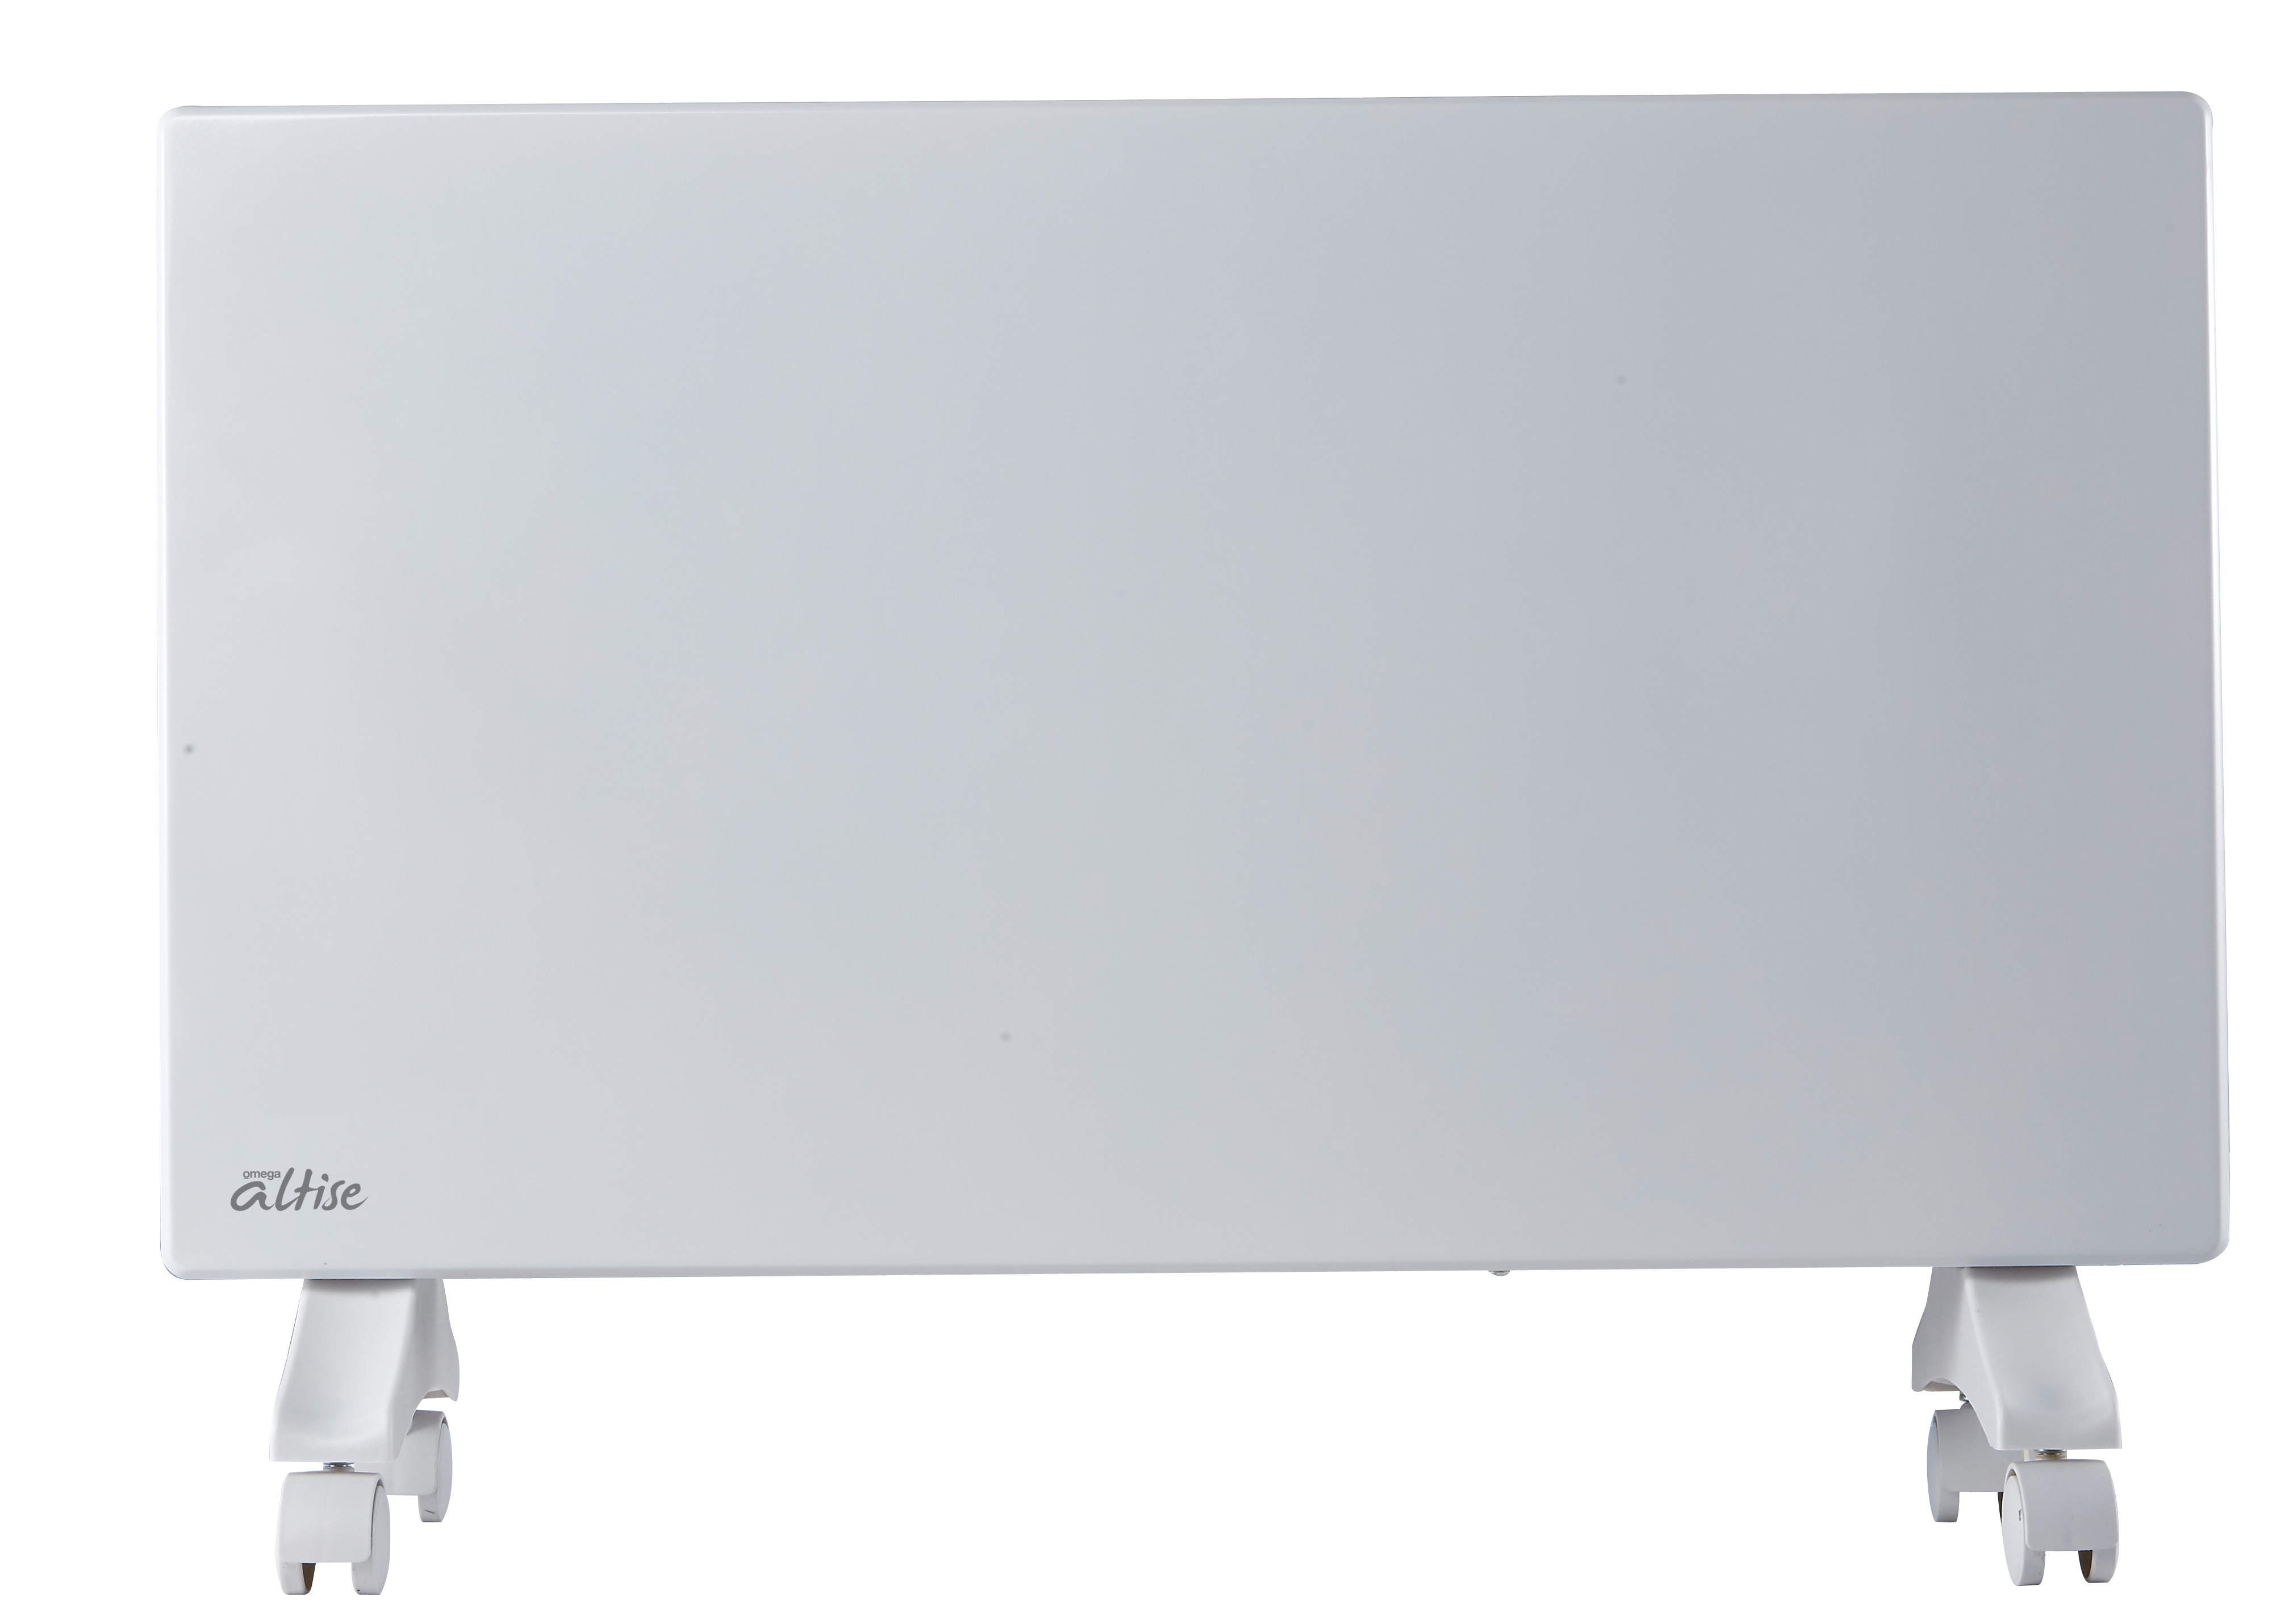 Omega Altise product Panel Convection Heater - White 1800W  OAPE1800W